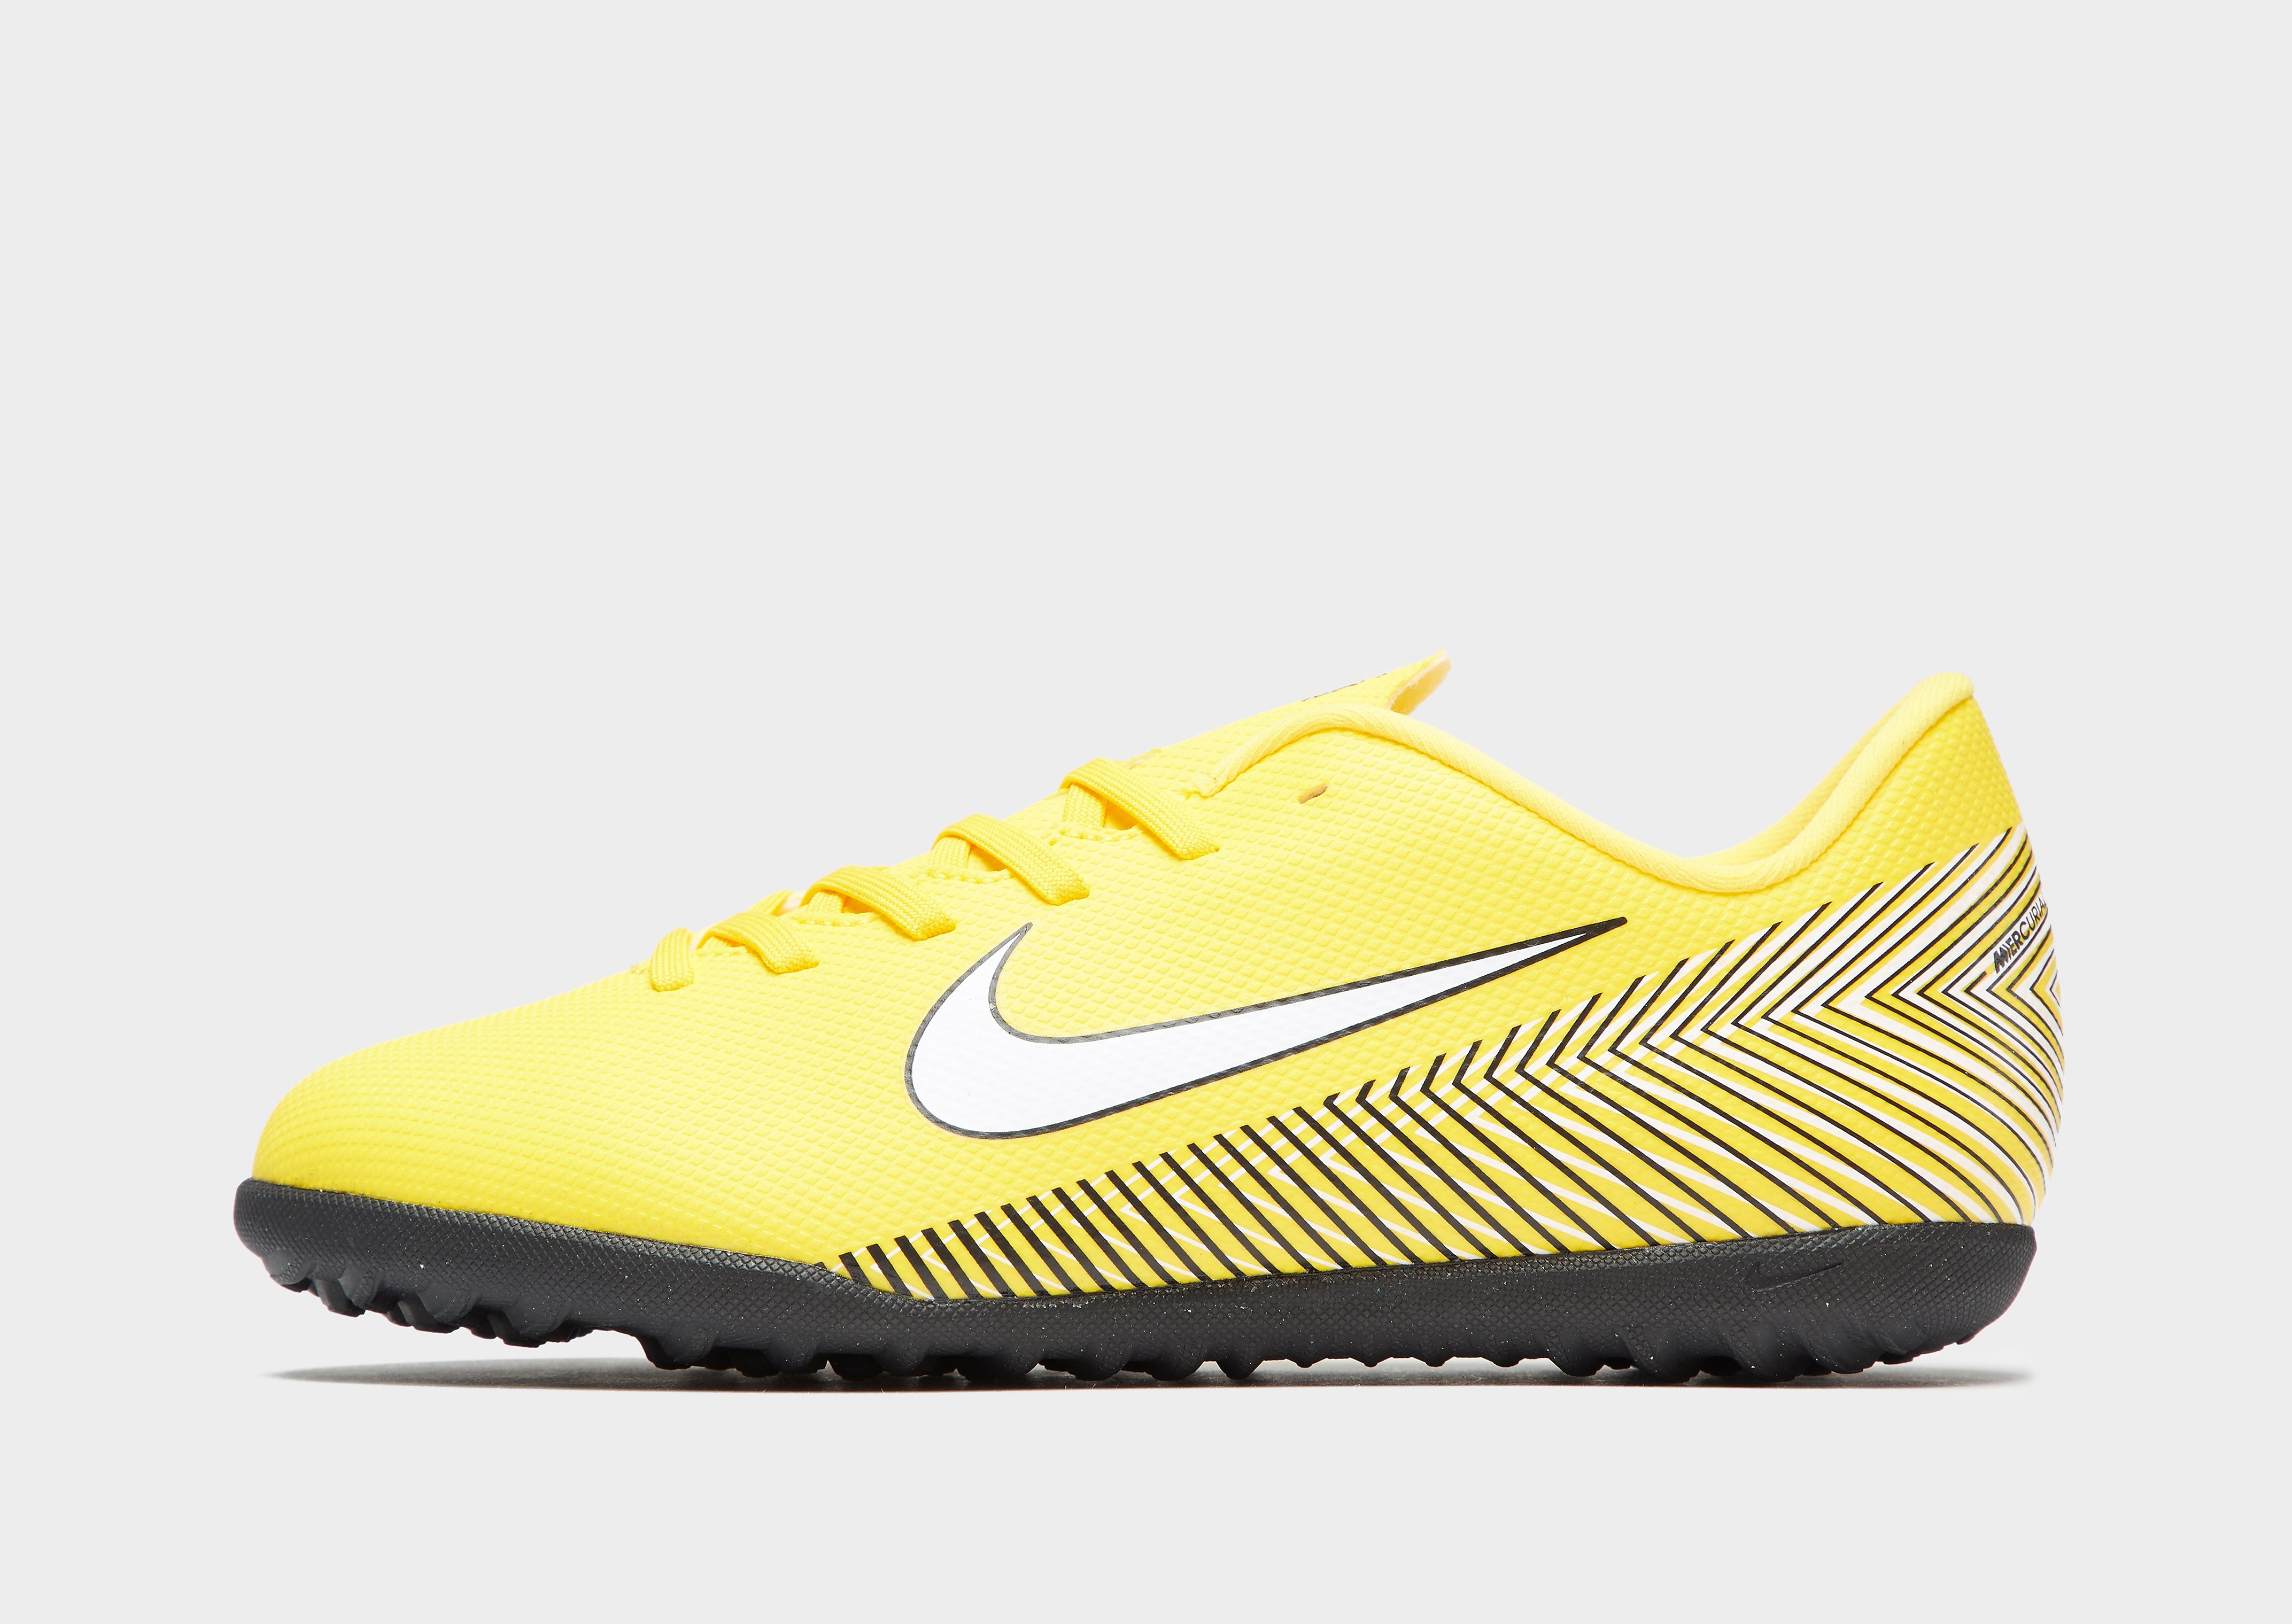 Nike Meu Jogo Mercurial Vapor Neymar Jr TF Junior - Geel - Kind